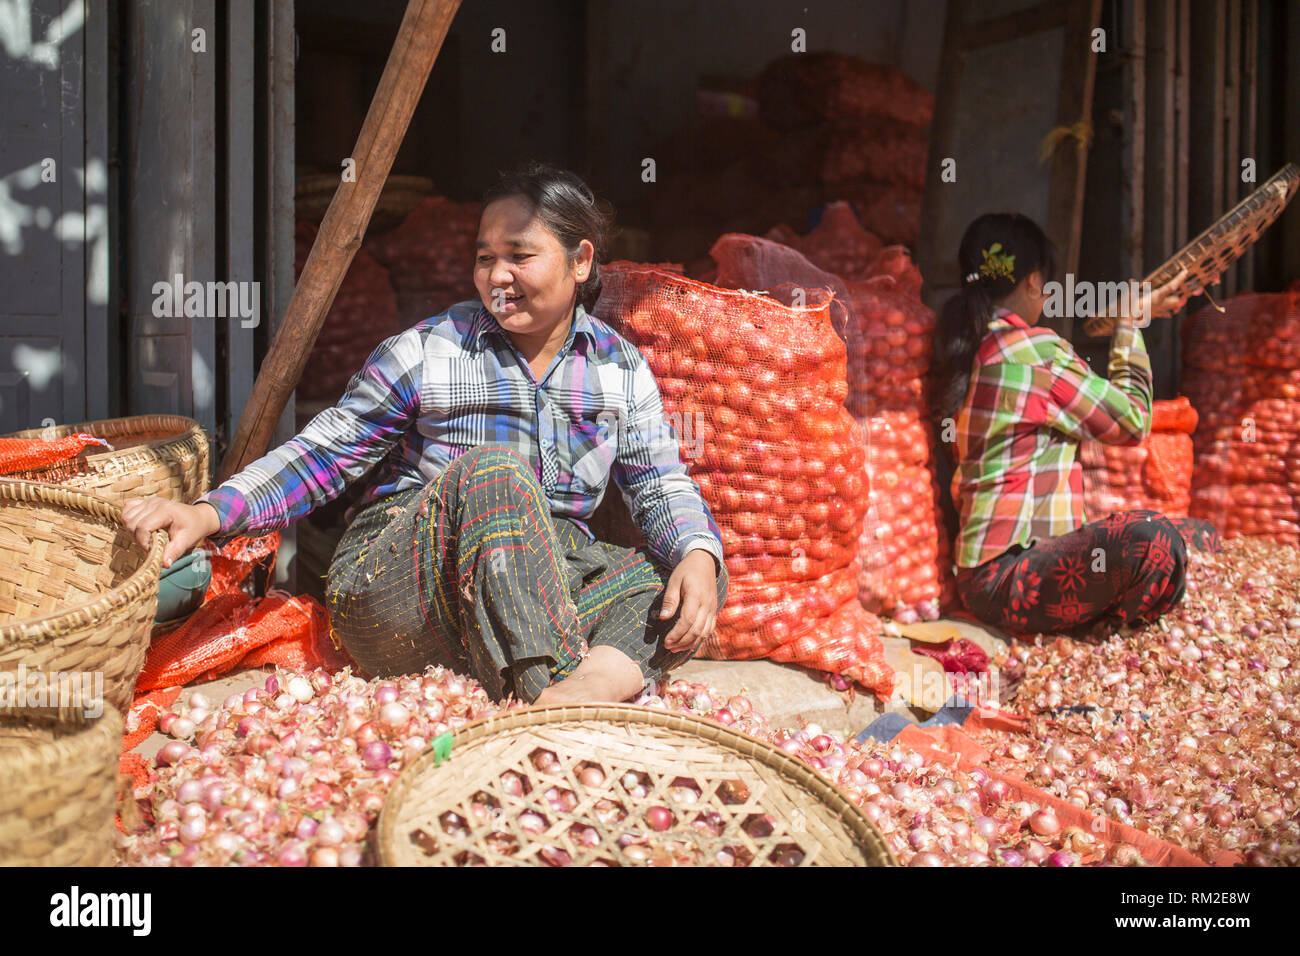 MANDALAY, MYANMAR - JANUARY 13, 2016: Unidentified people working at the market in Mandalay , Myanmar on January 13, 2016 - Stock Image